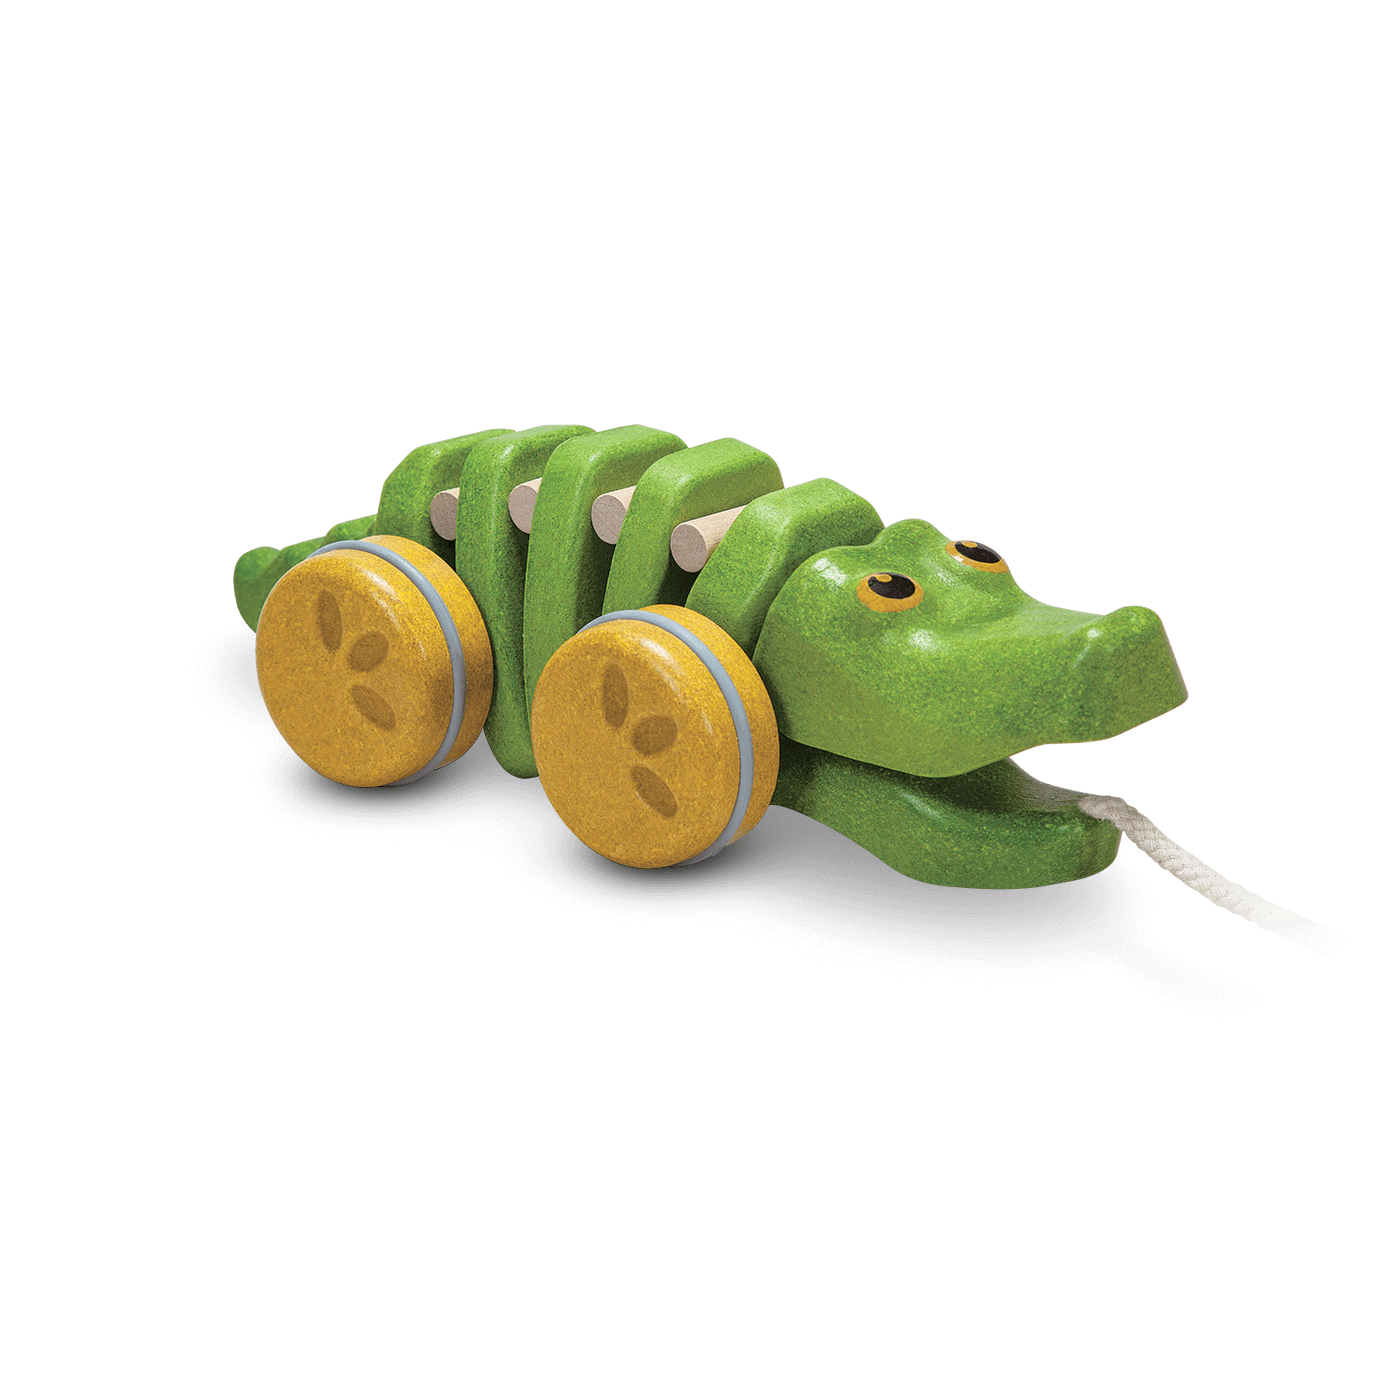 5609_PlanToys_DANCING_ALLIGATOR_Push_and_Pull_Gross_Motor_Coordination_Imagination_Language_and_Communications_12m_Wooden_toys_Education_toys_Safety_Toys_Non-toxic_0.png